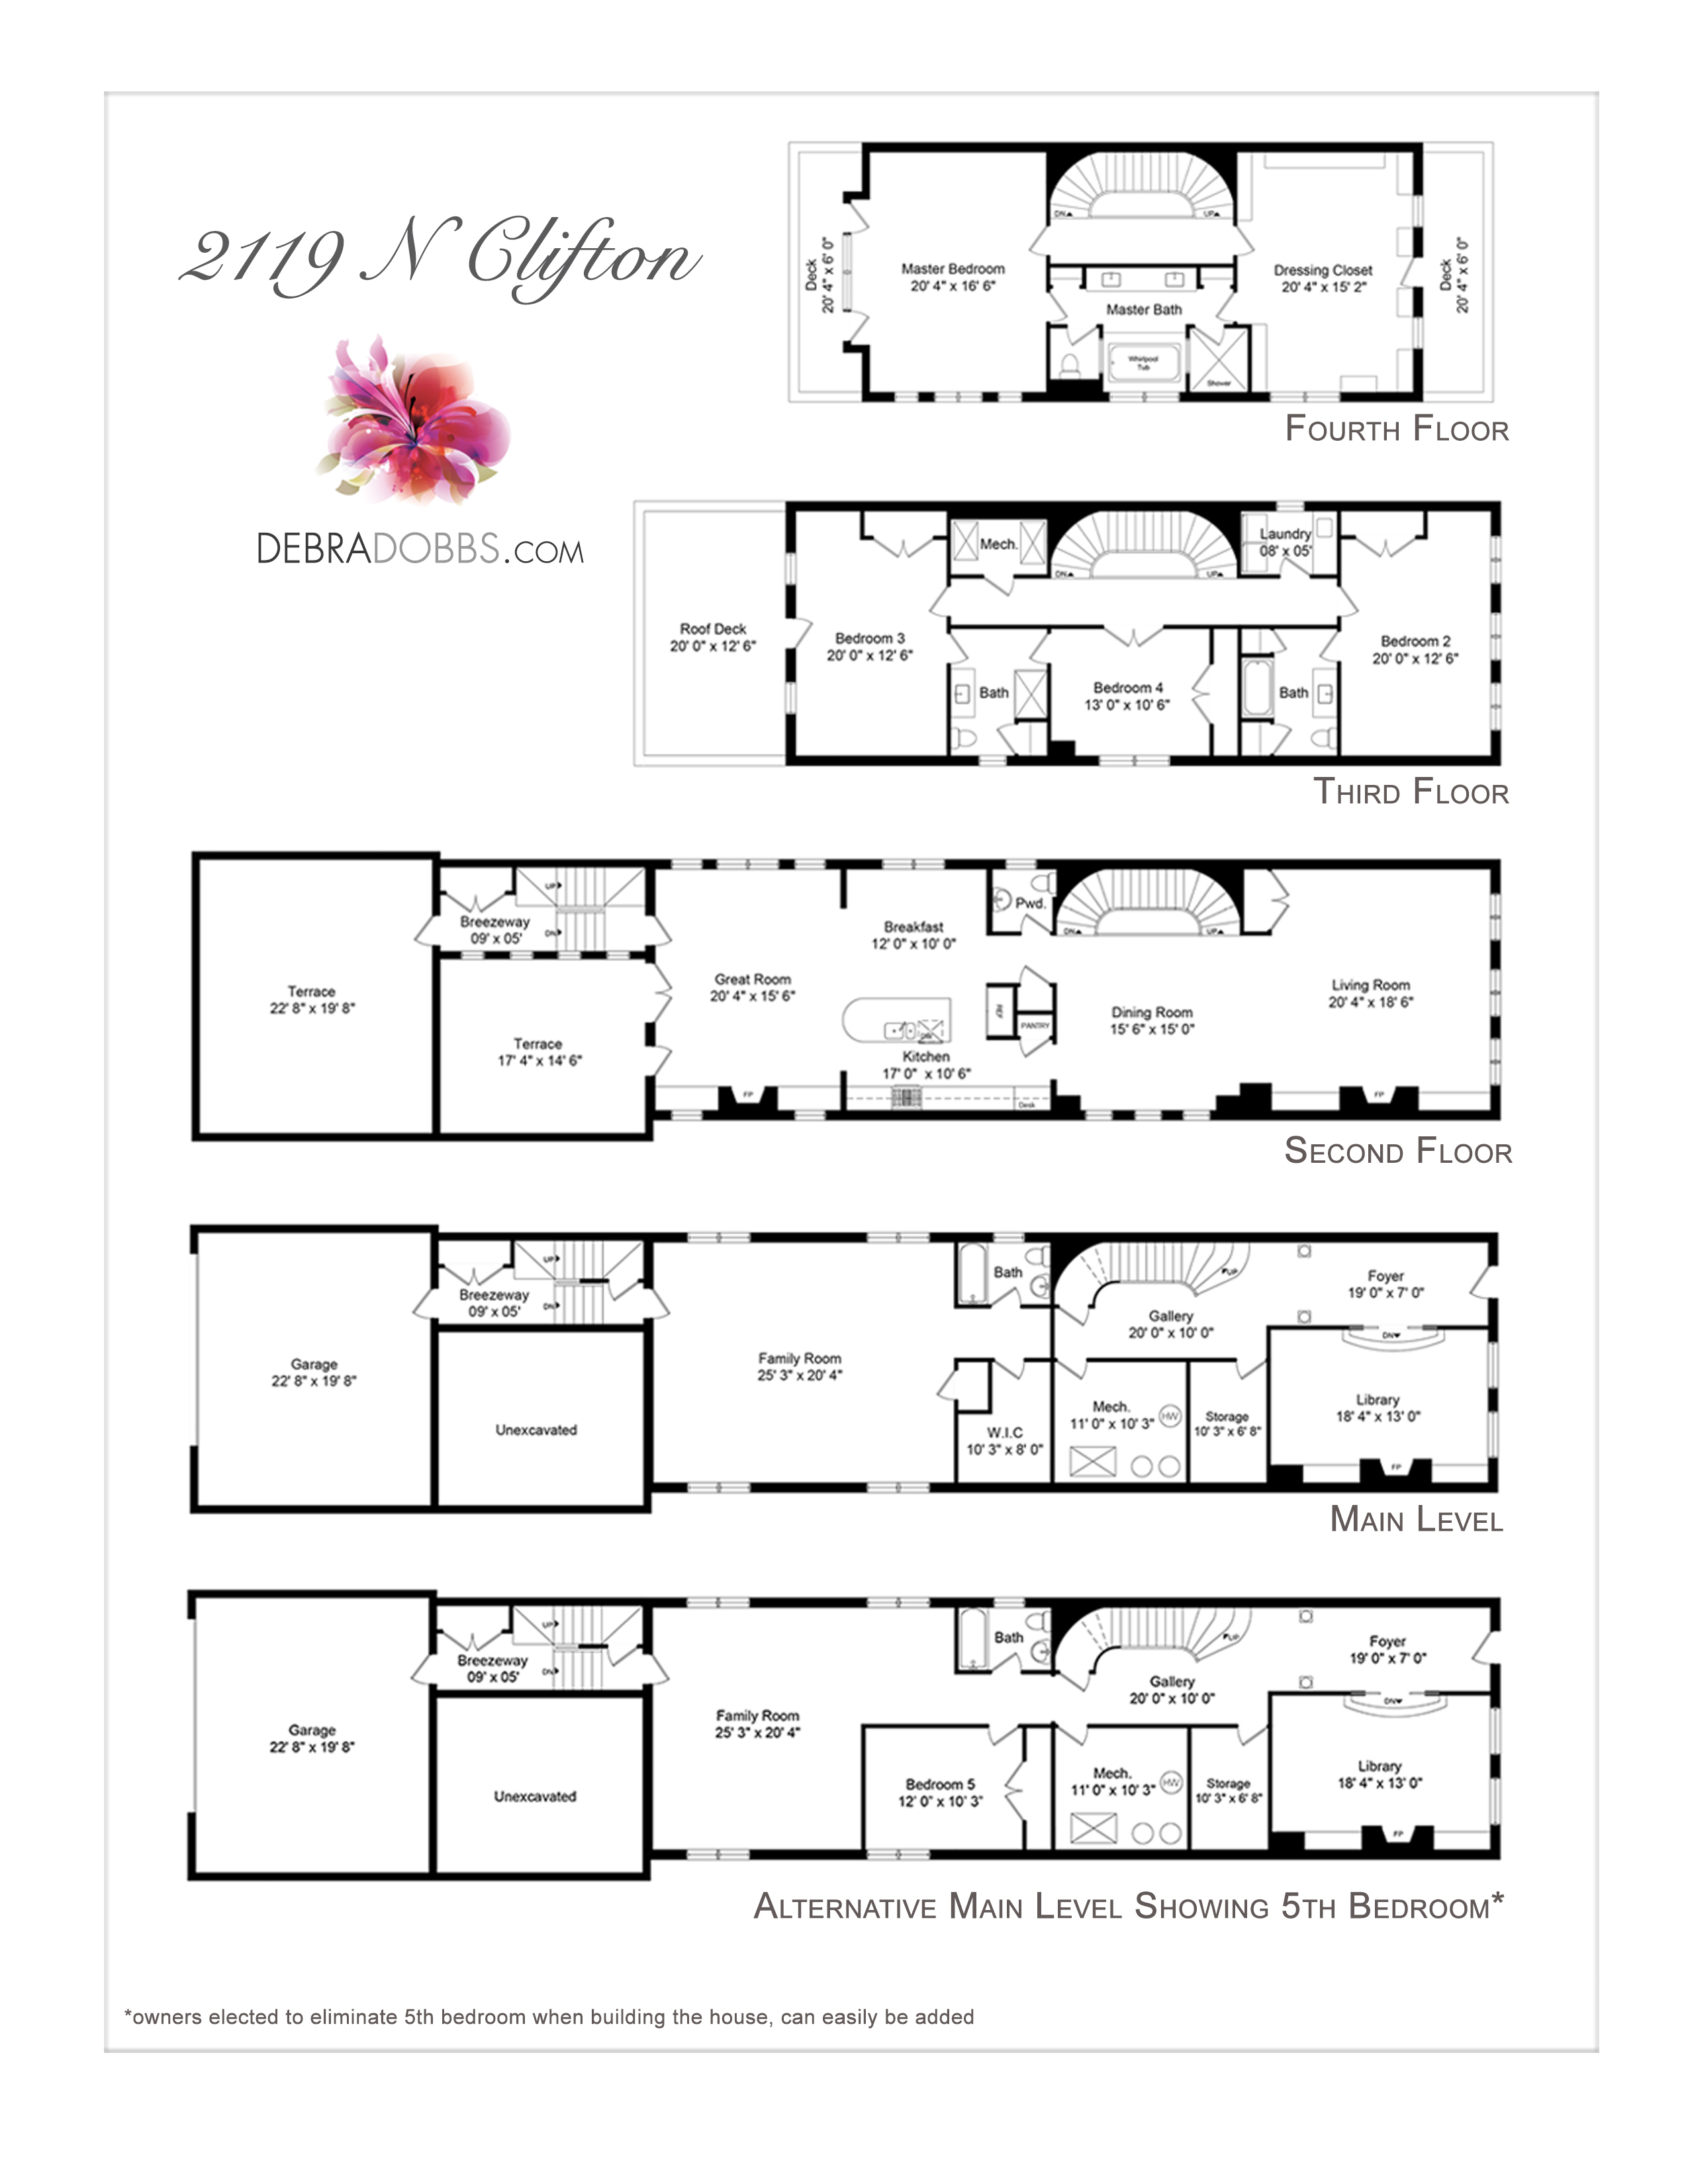 2119-clifton-branded-floorplan-5th-bedroom